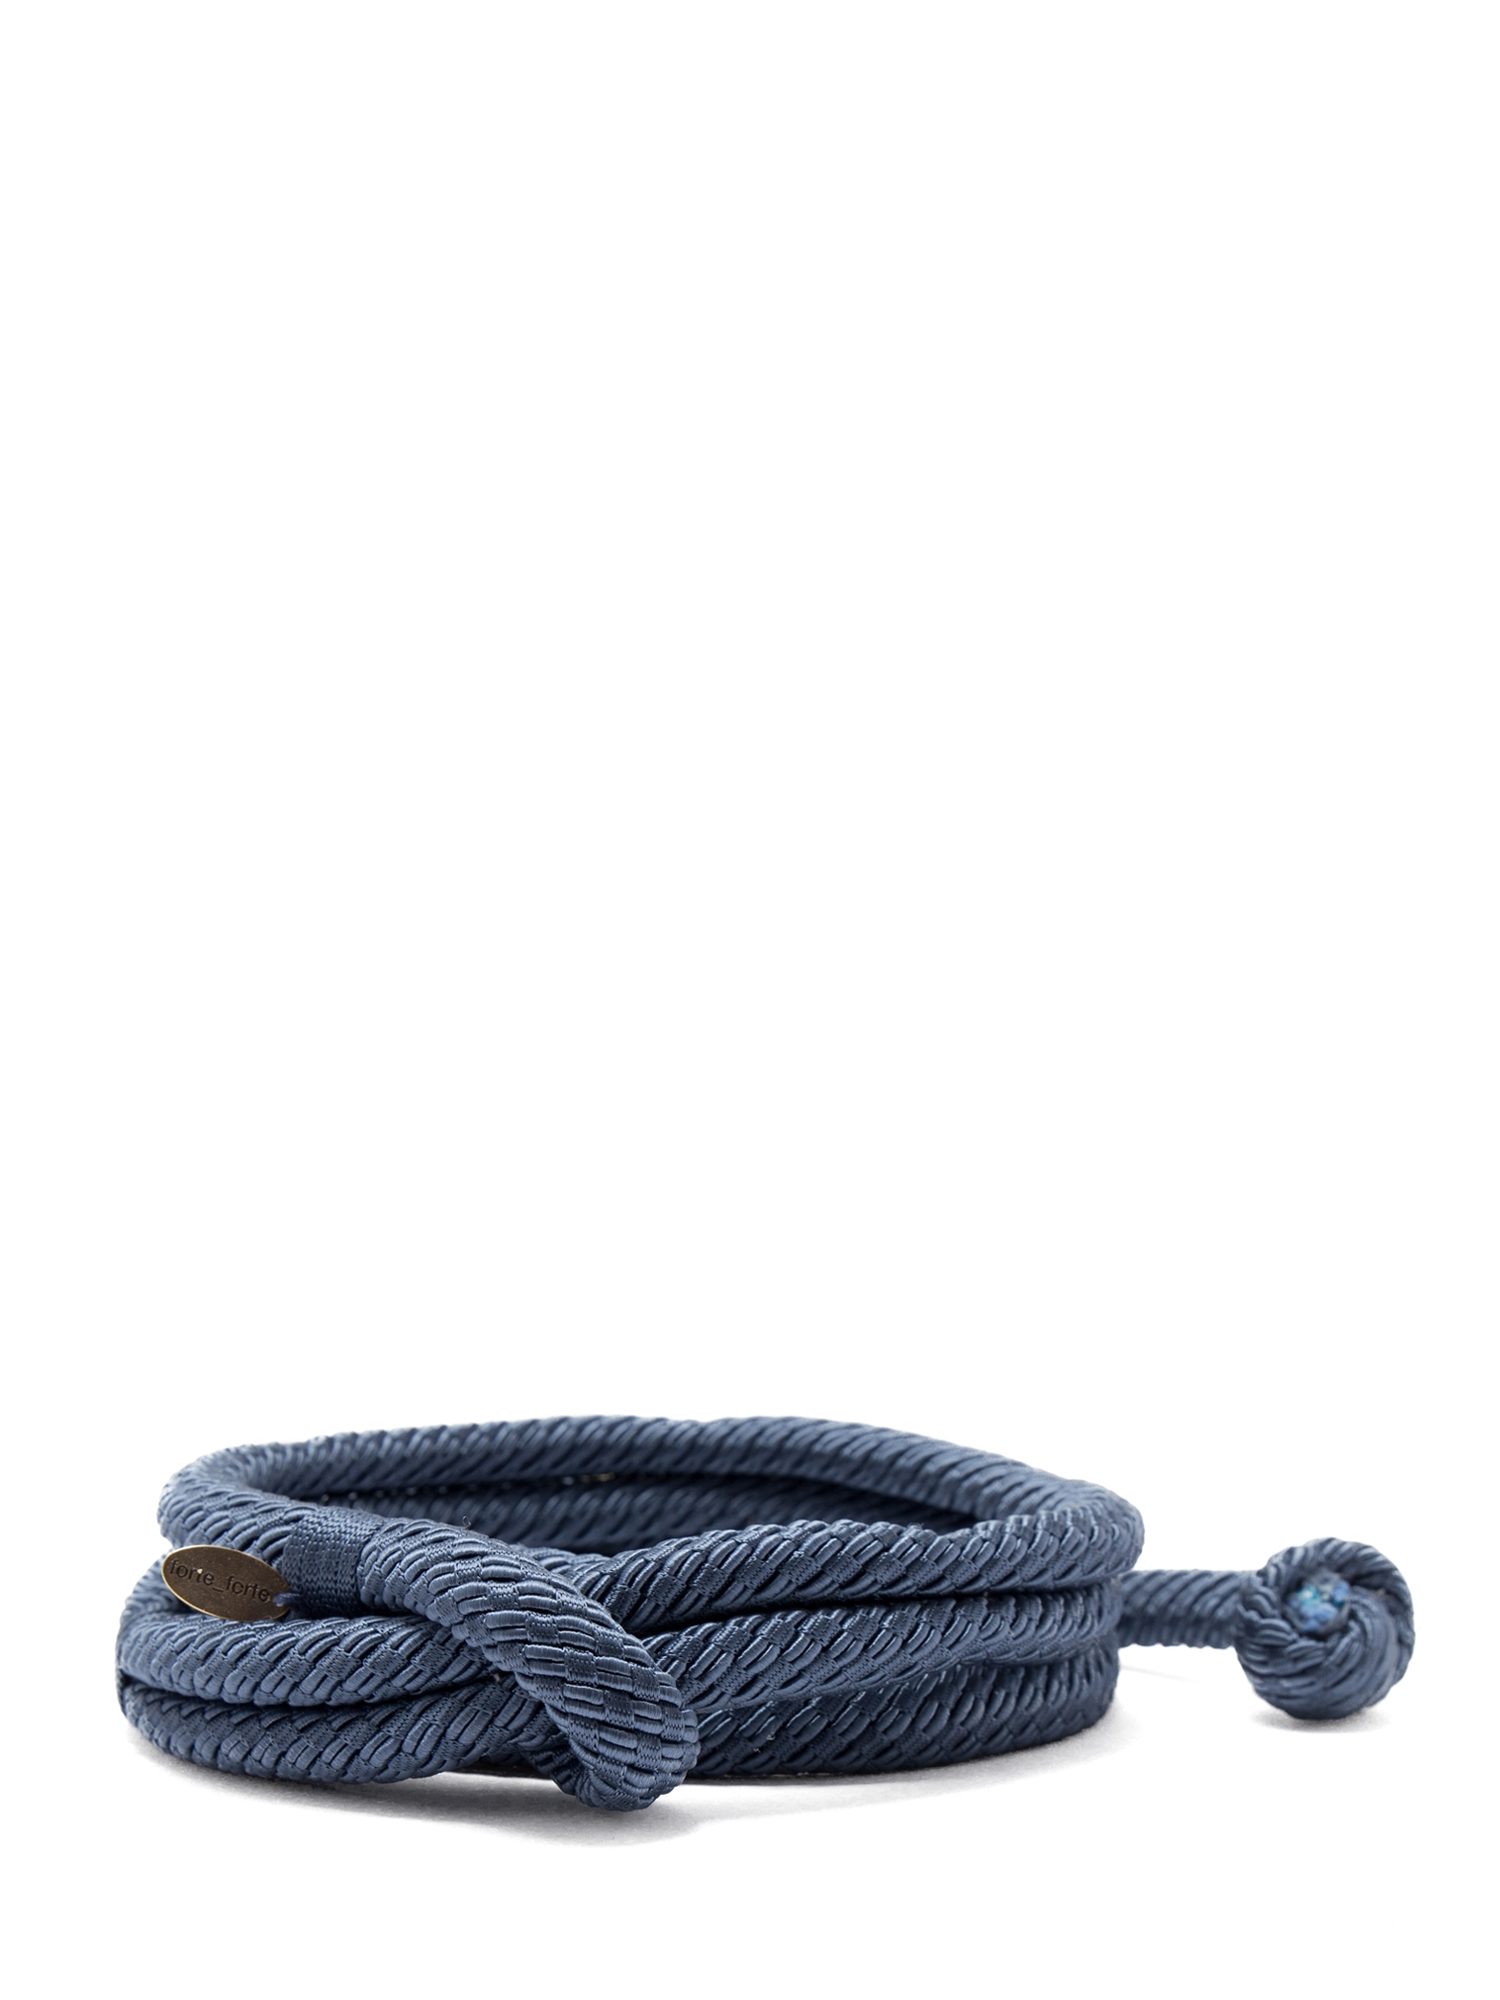 CEINTURE BRAIDED DOUBLE